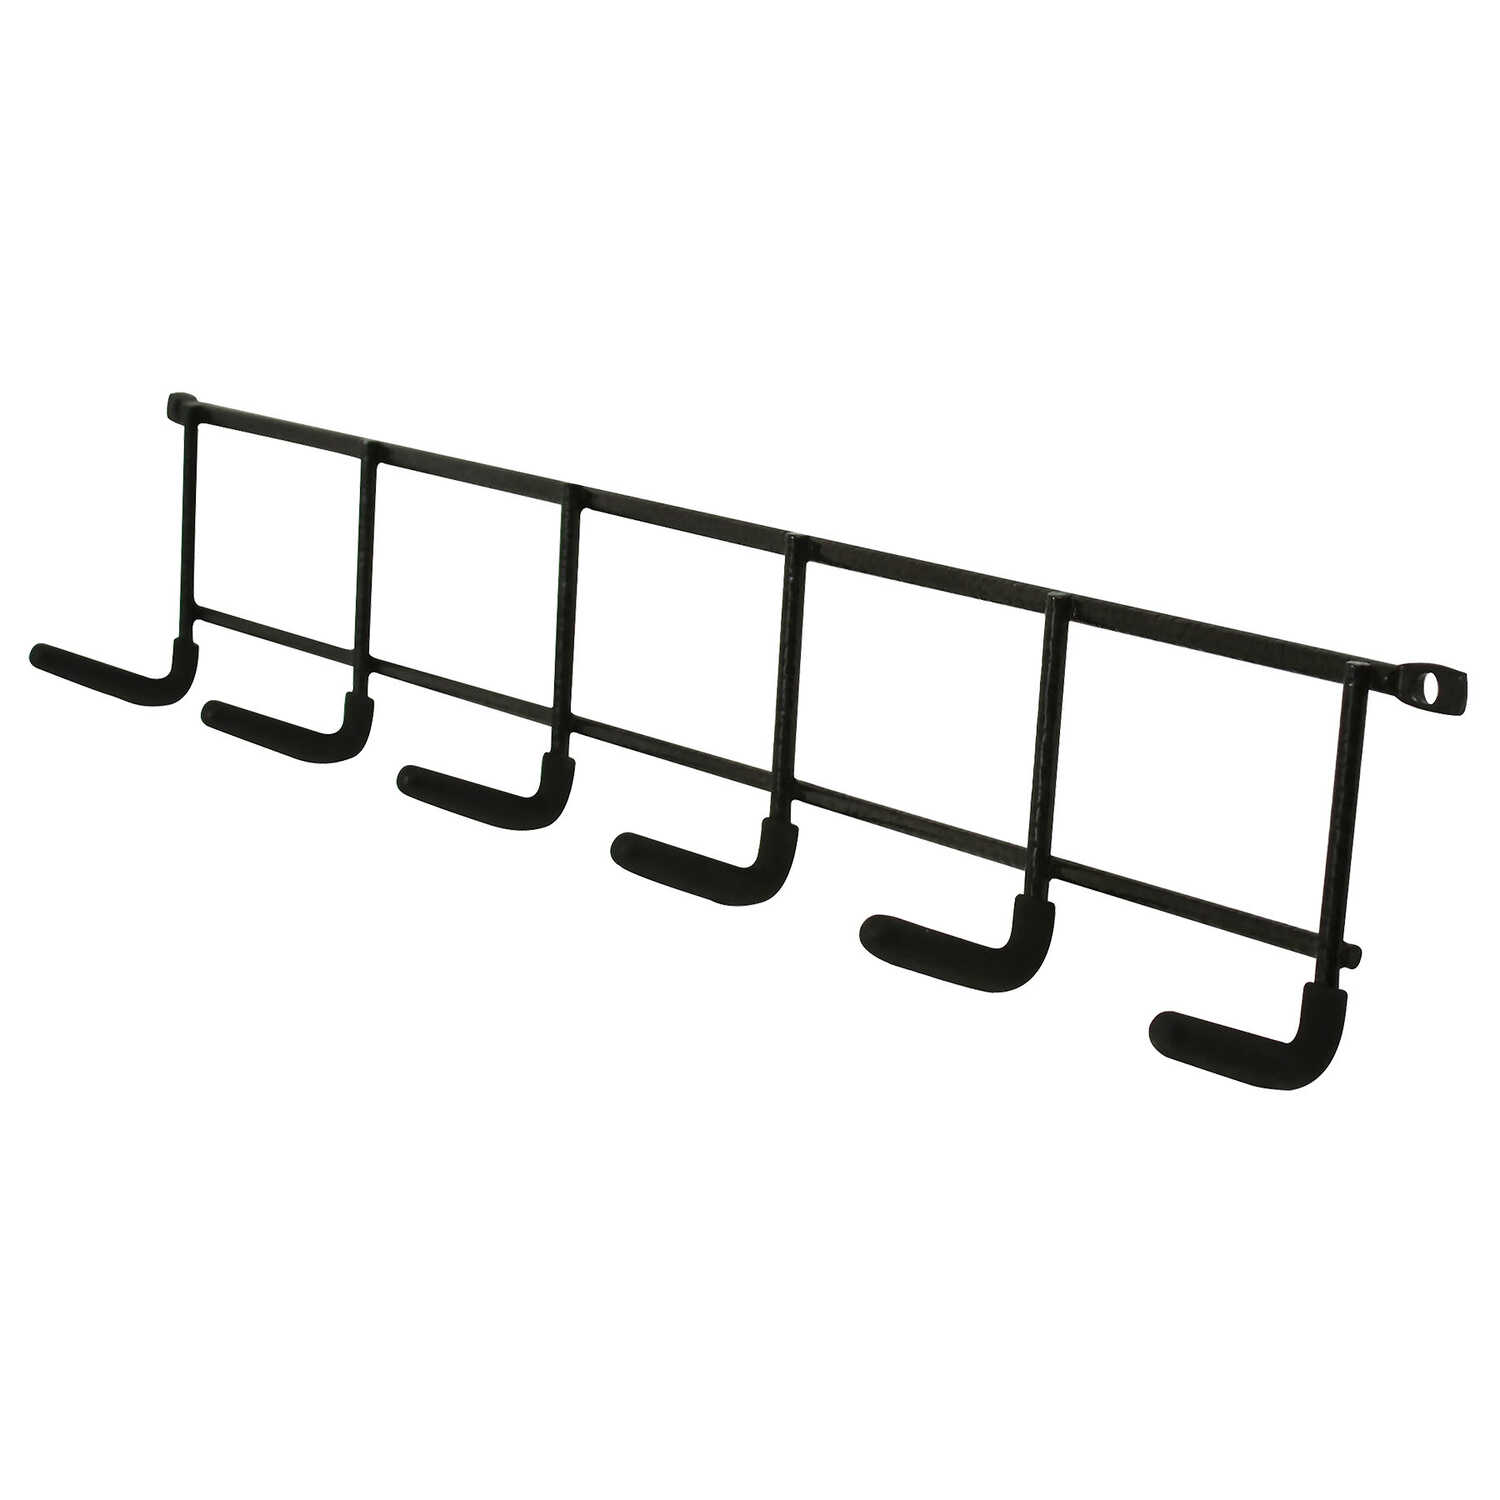 Crawford  Lehigh  Zinc-Plated  Black  Steel  Hanger Holder  15 lb. capacity 1 pk